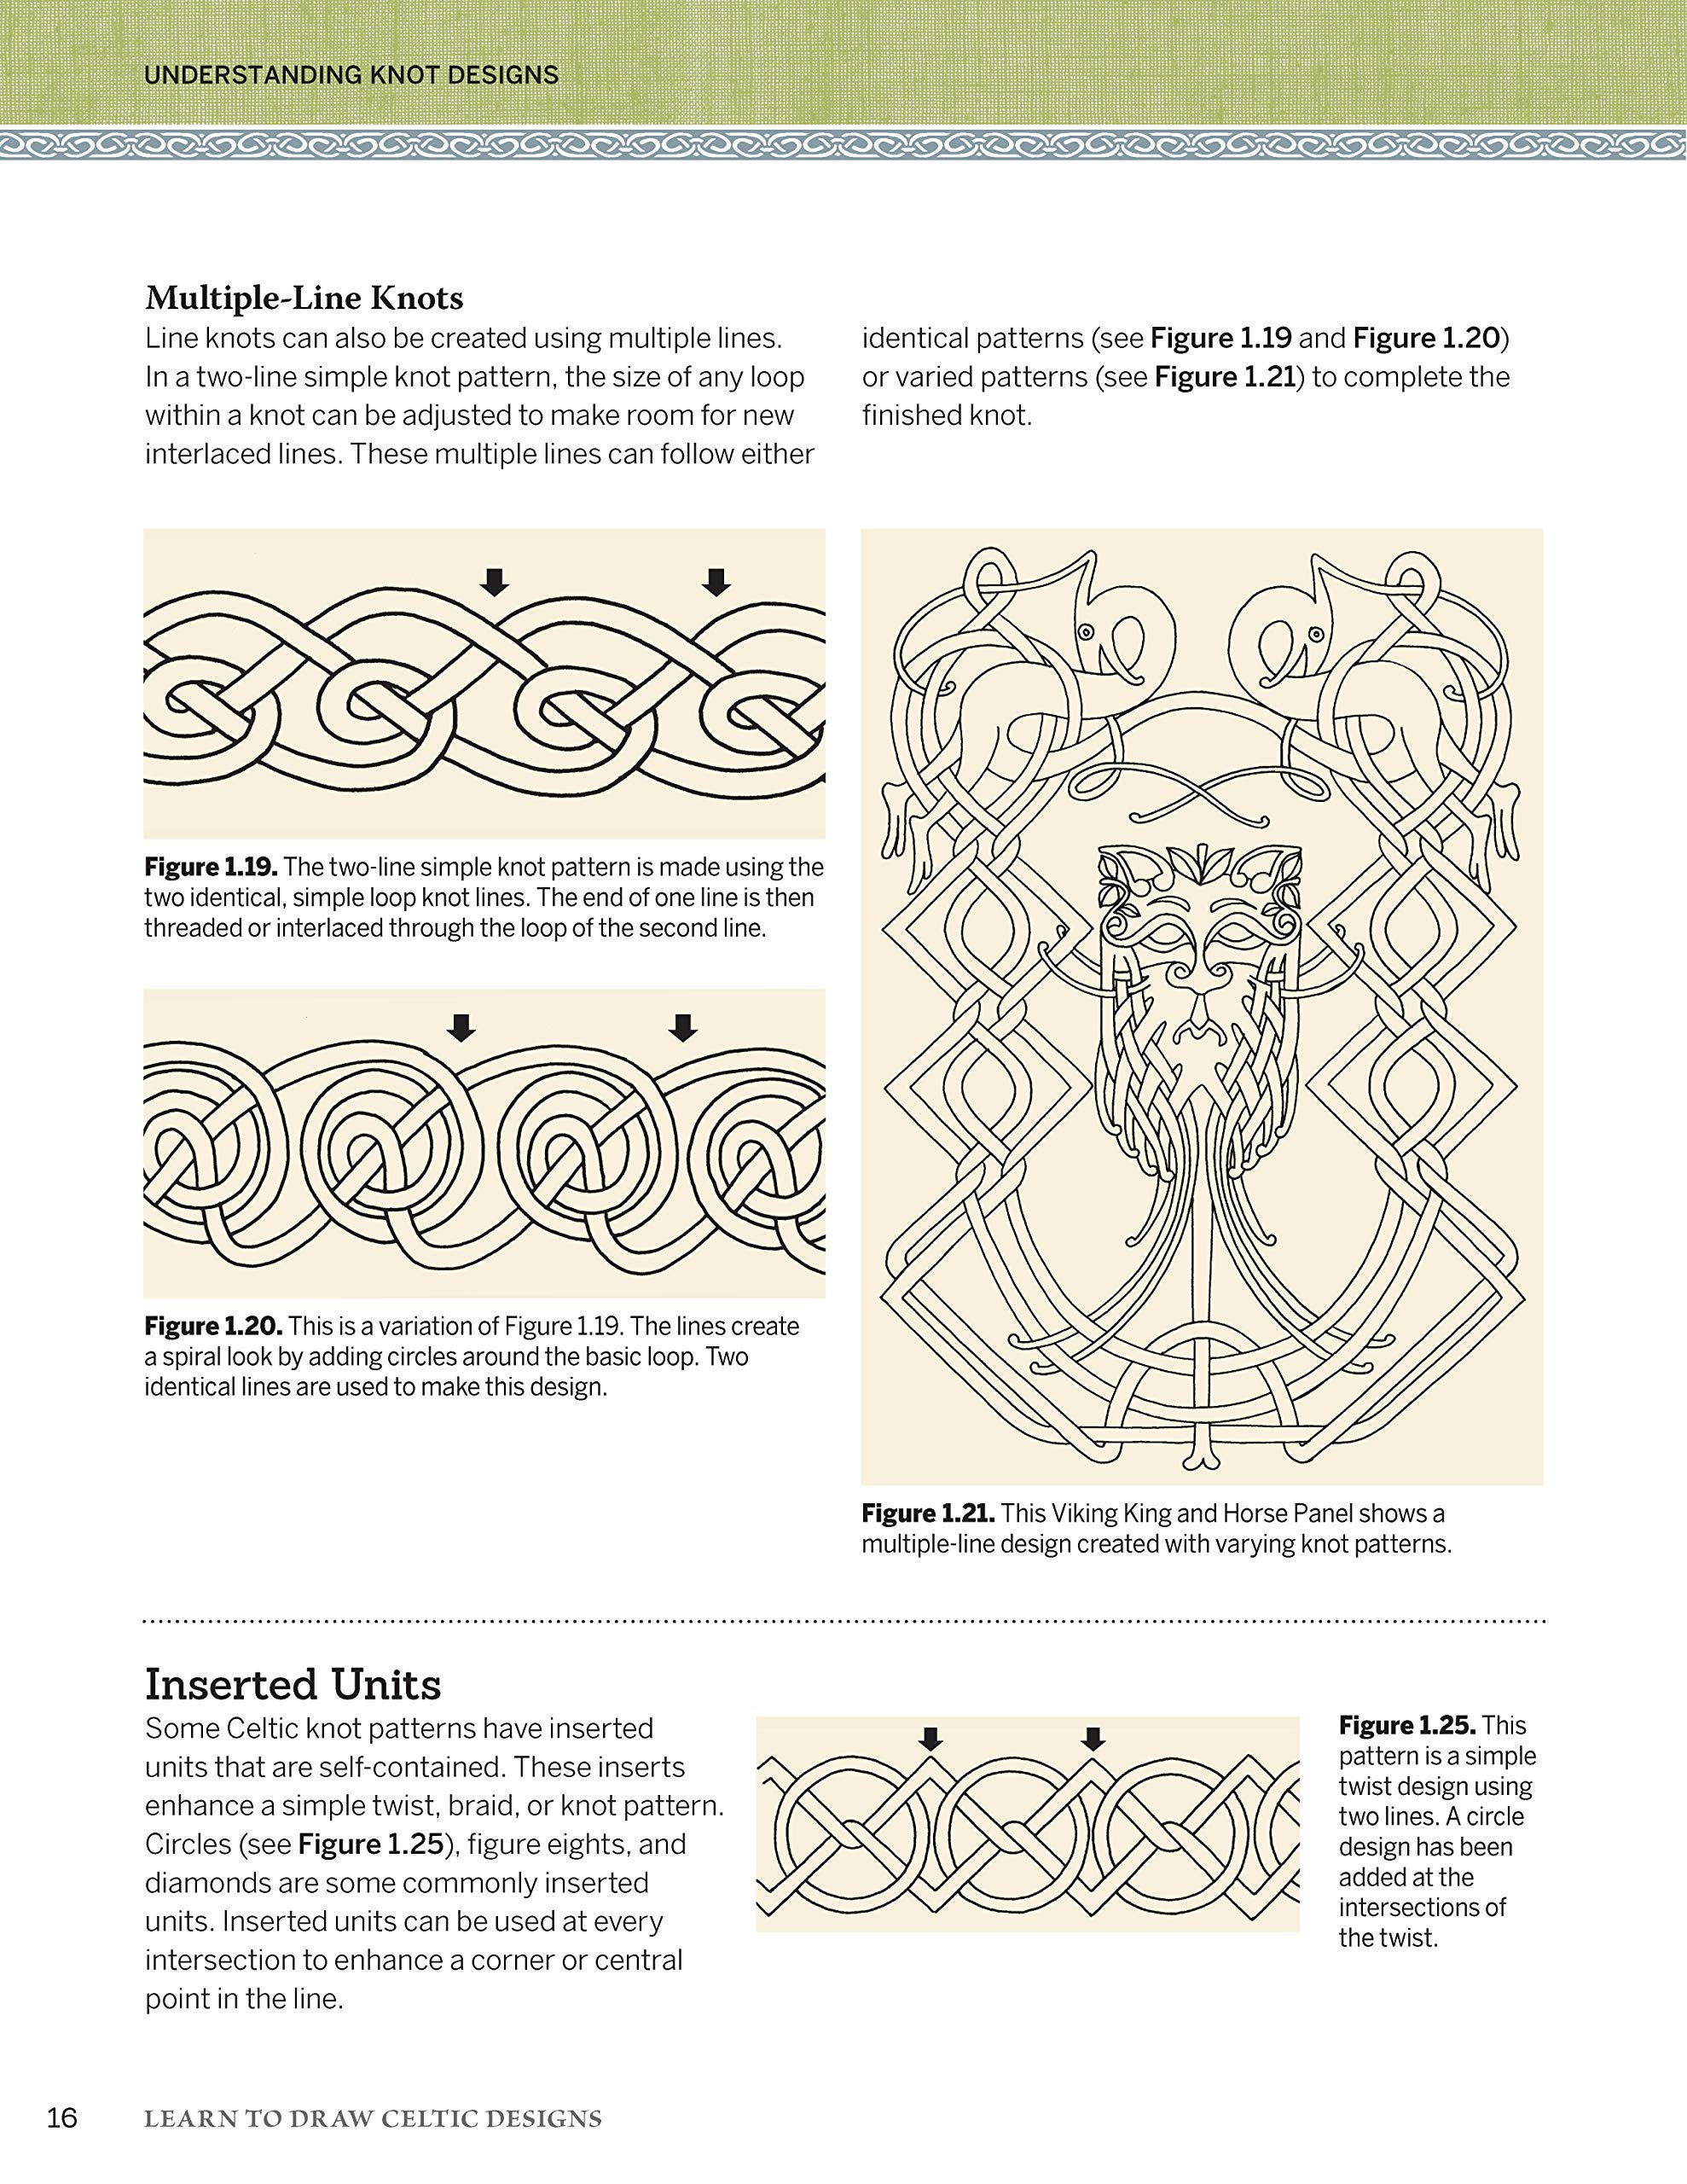 Learn To Draw Celtic Designs Exercises And Patterns For Artists And Crafters Fox Chapel Publishing Over 150 Ready To Use Patterns From Lora Irish Knots Braids Mythical Creatures More Lora S Irish 9781565238626